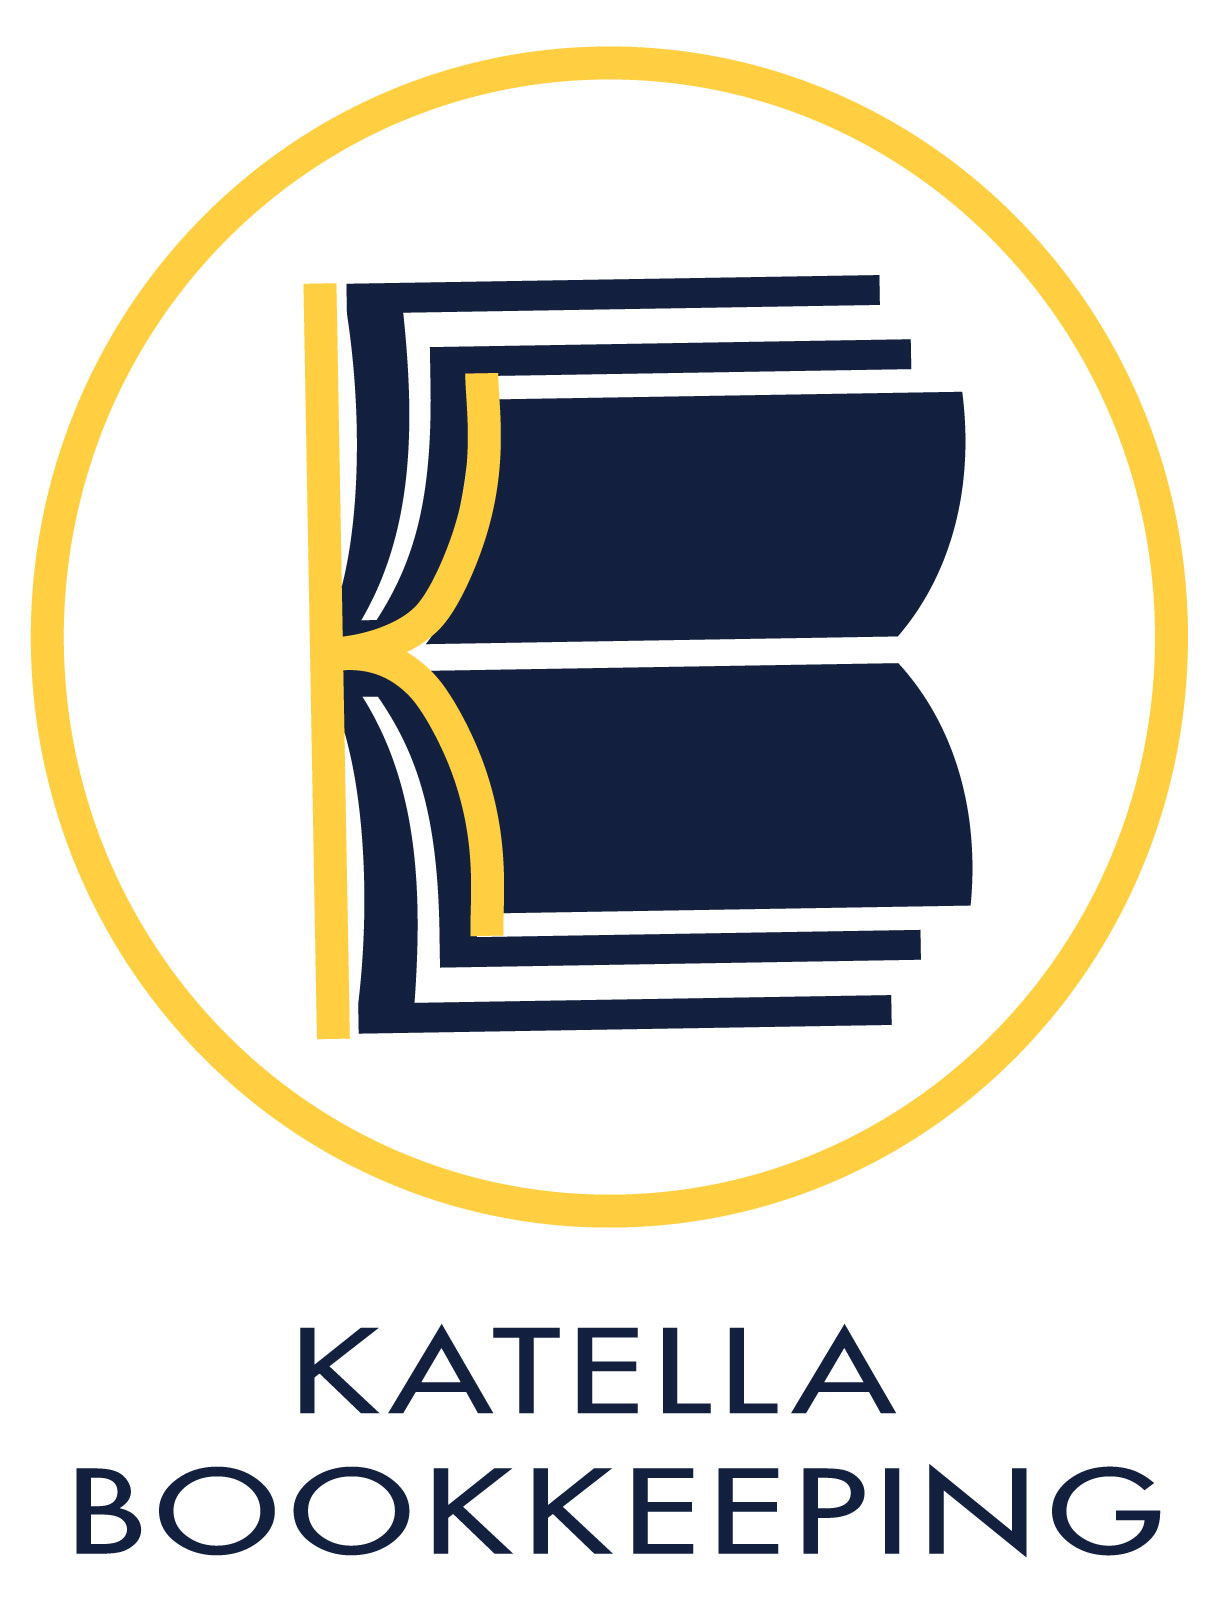 Katella Bookkeeping